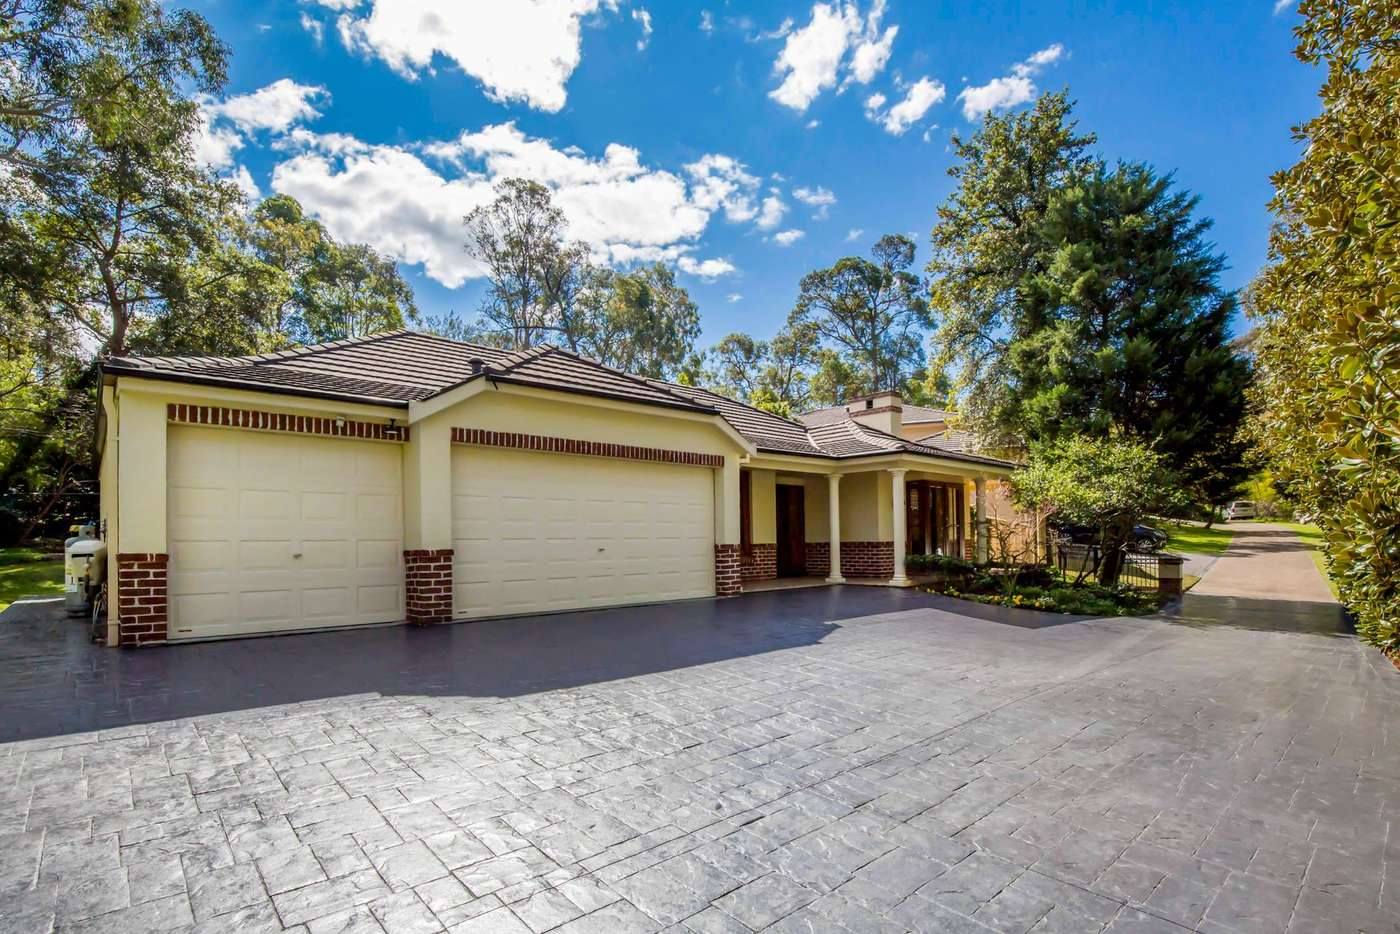 Main view of Homely house listing, 47 Layton Avenue, Blaxland NSW 2774